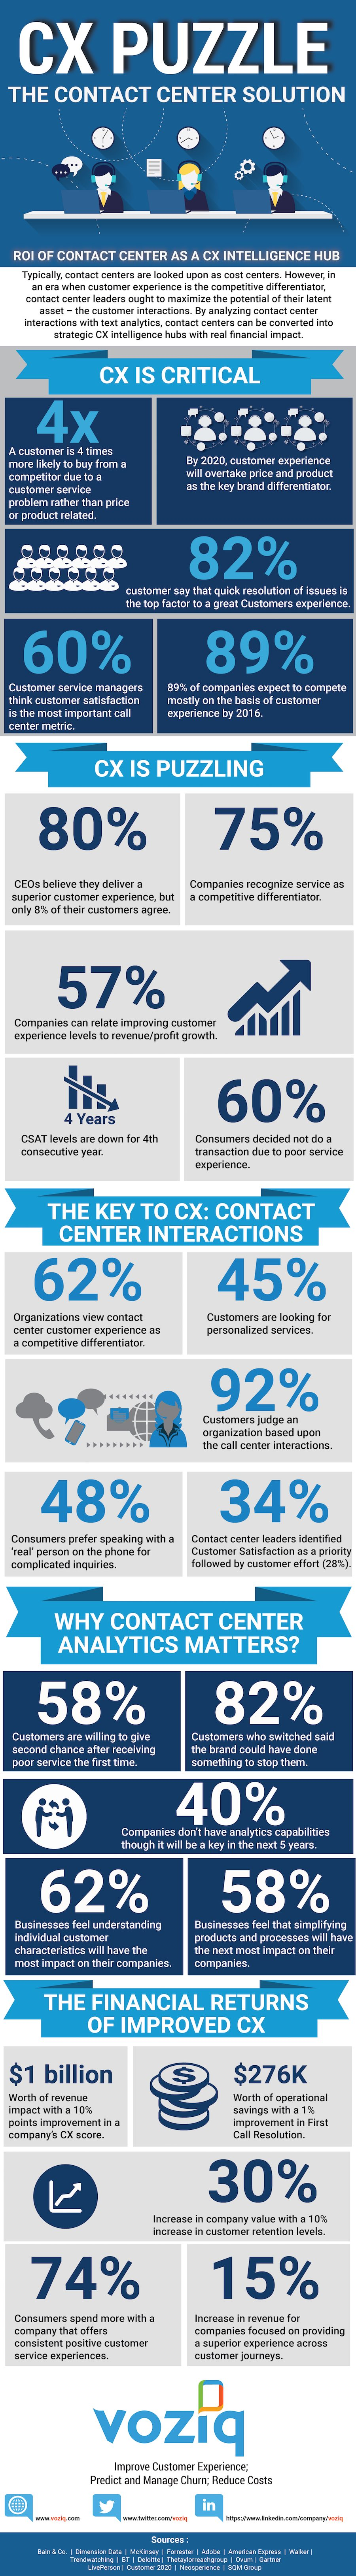 Contact Center Solution to Customer Experience Puzzle